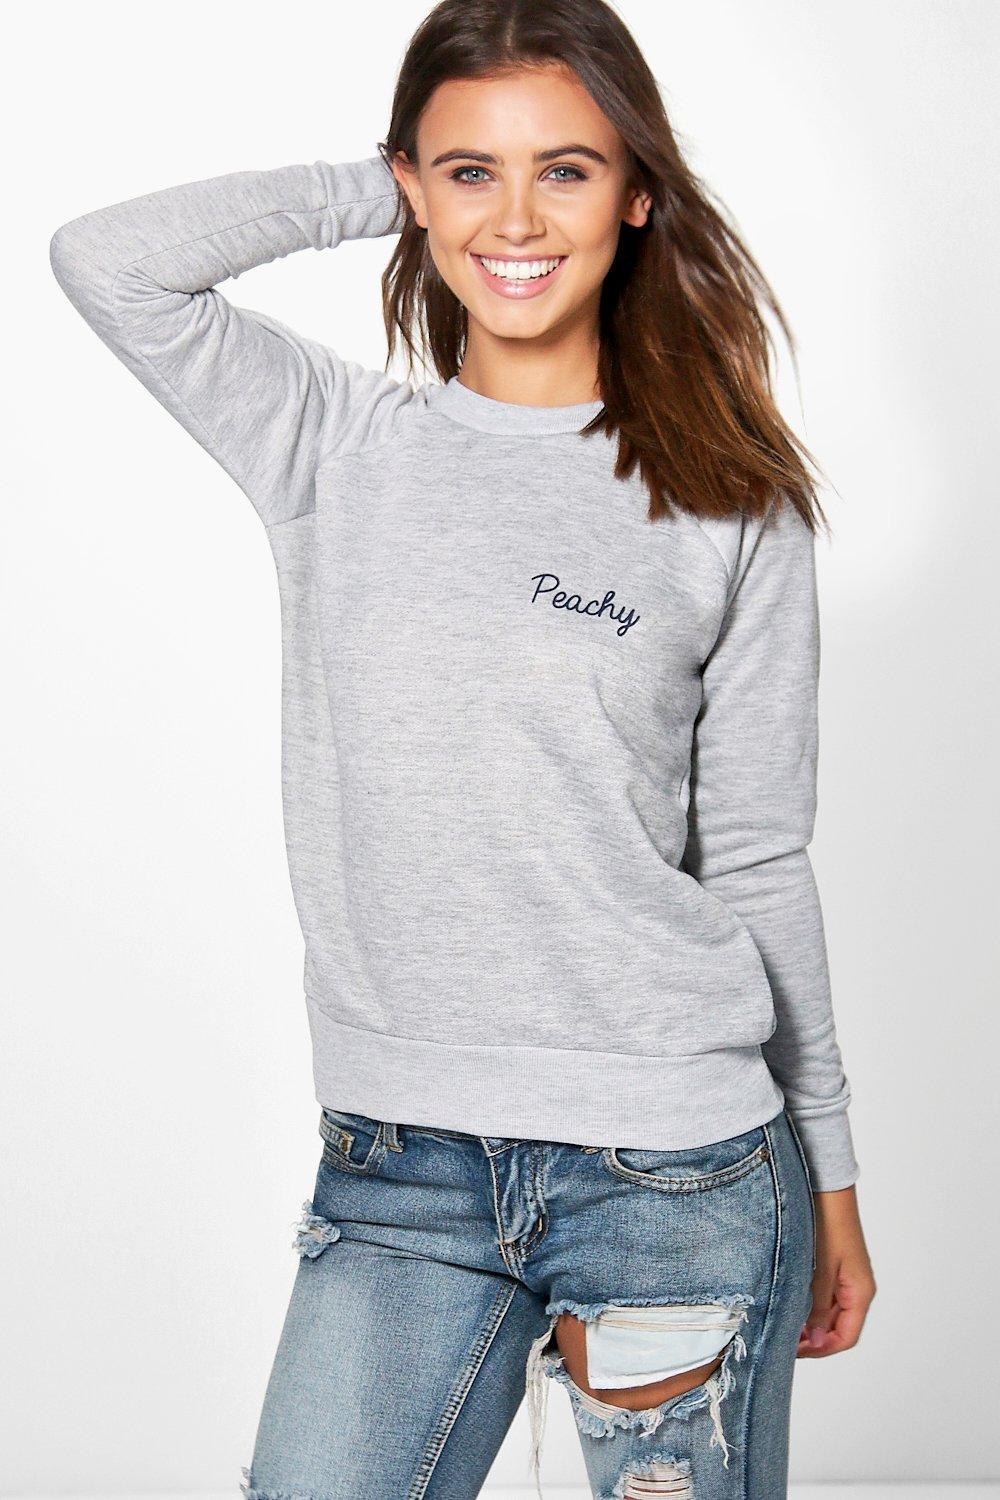 Petite Bonnie Peachy Slogan Sweat